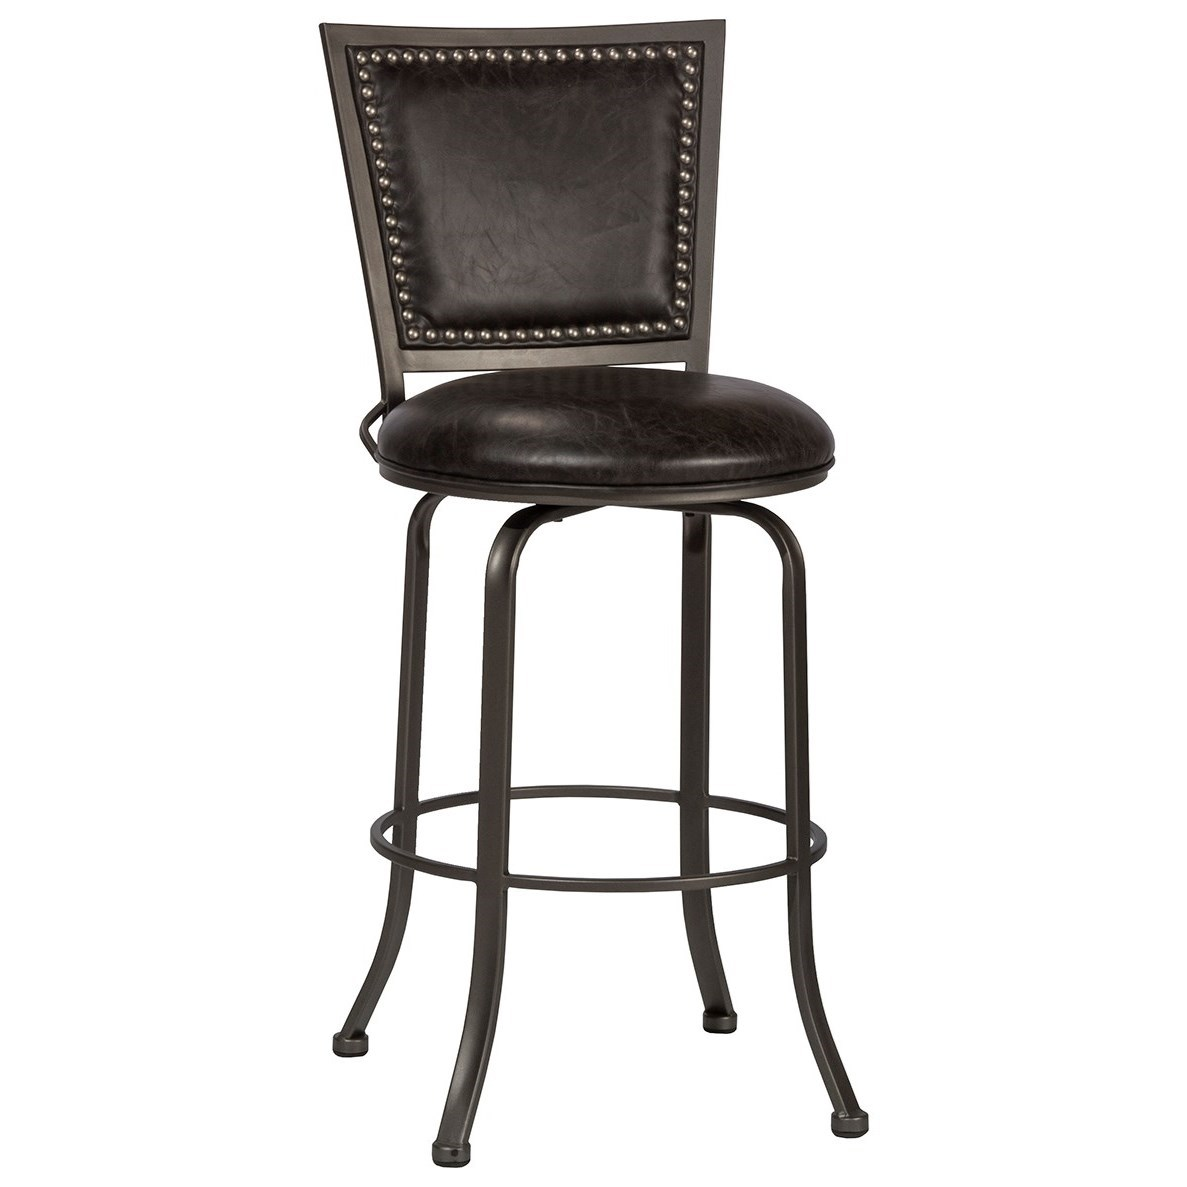 Belle Grove Stools Bar Stool by Hillsdale at Crowley Furniture & Mattress